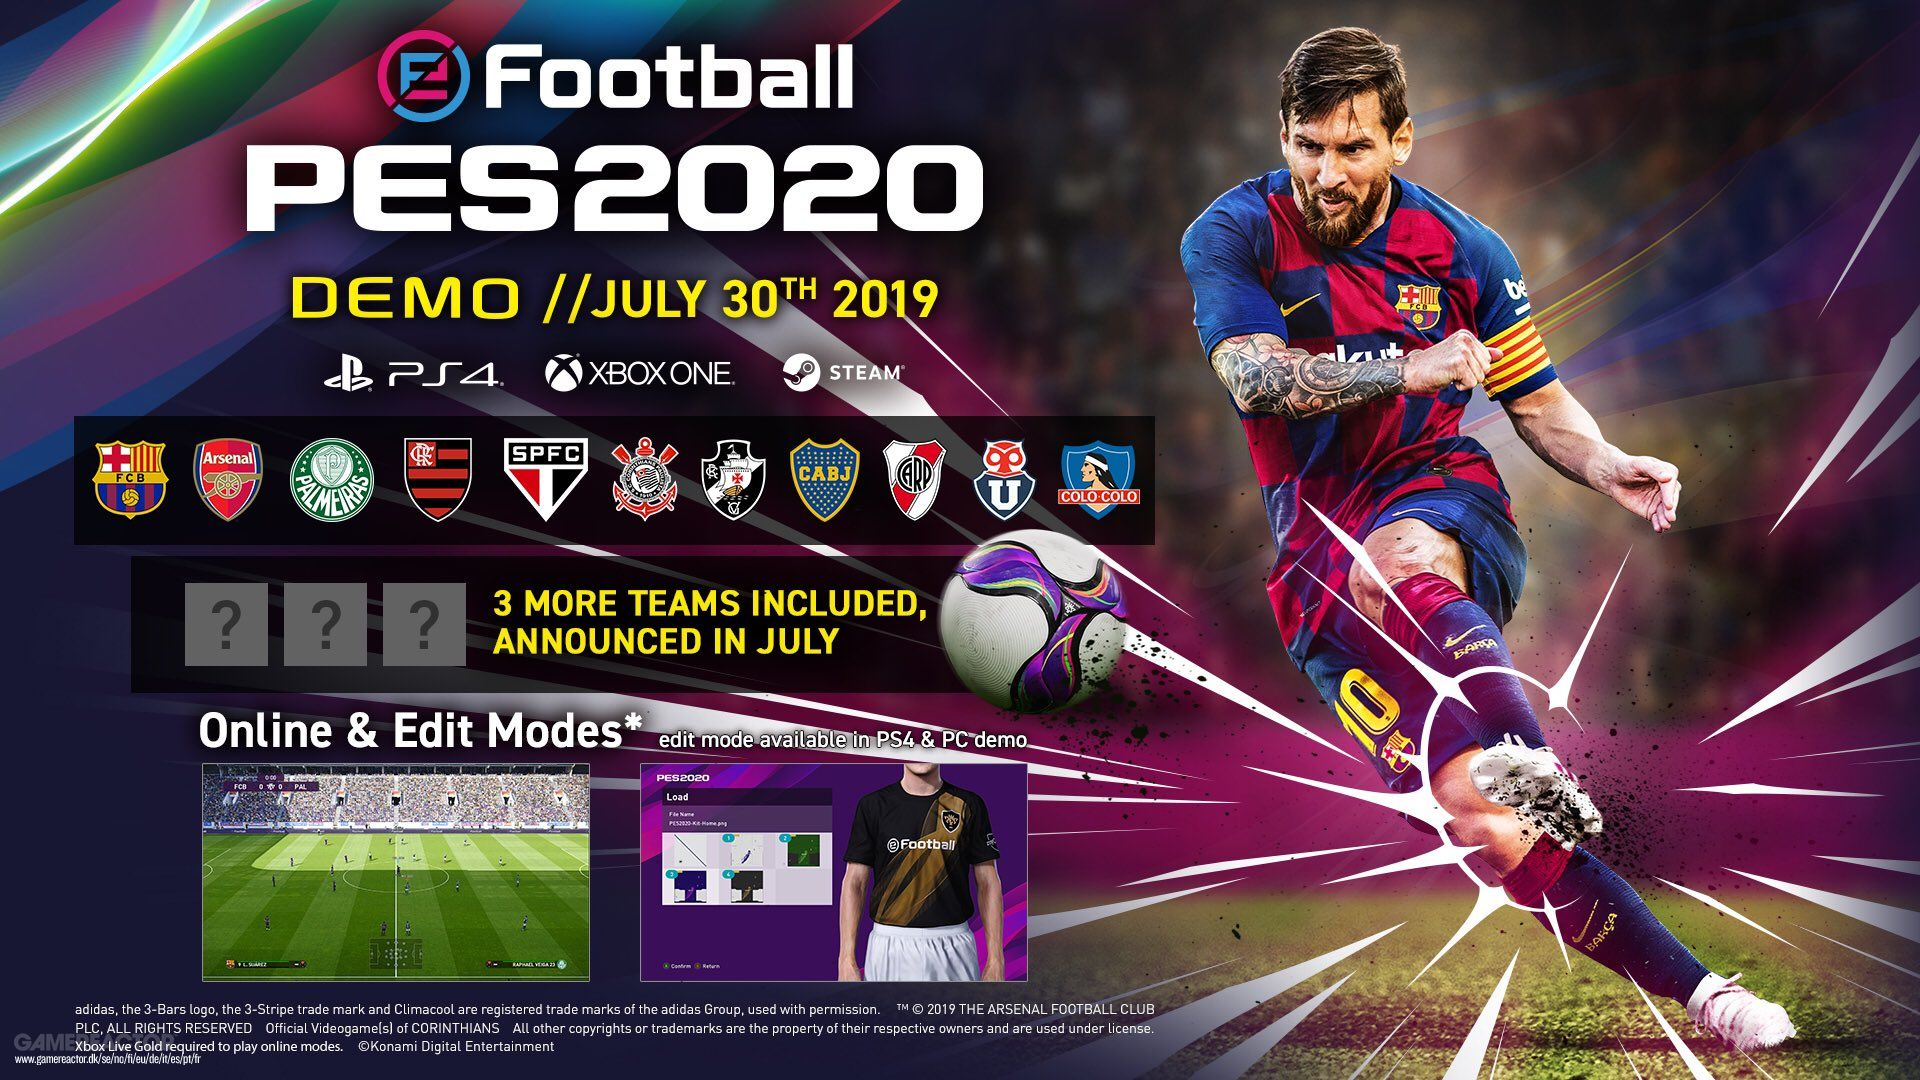 eFootball PES 2020 Demo includes Edit Mode and 14 real teams